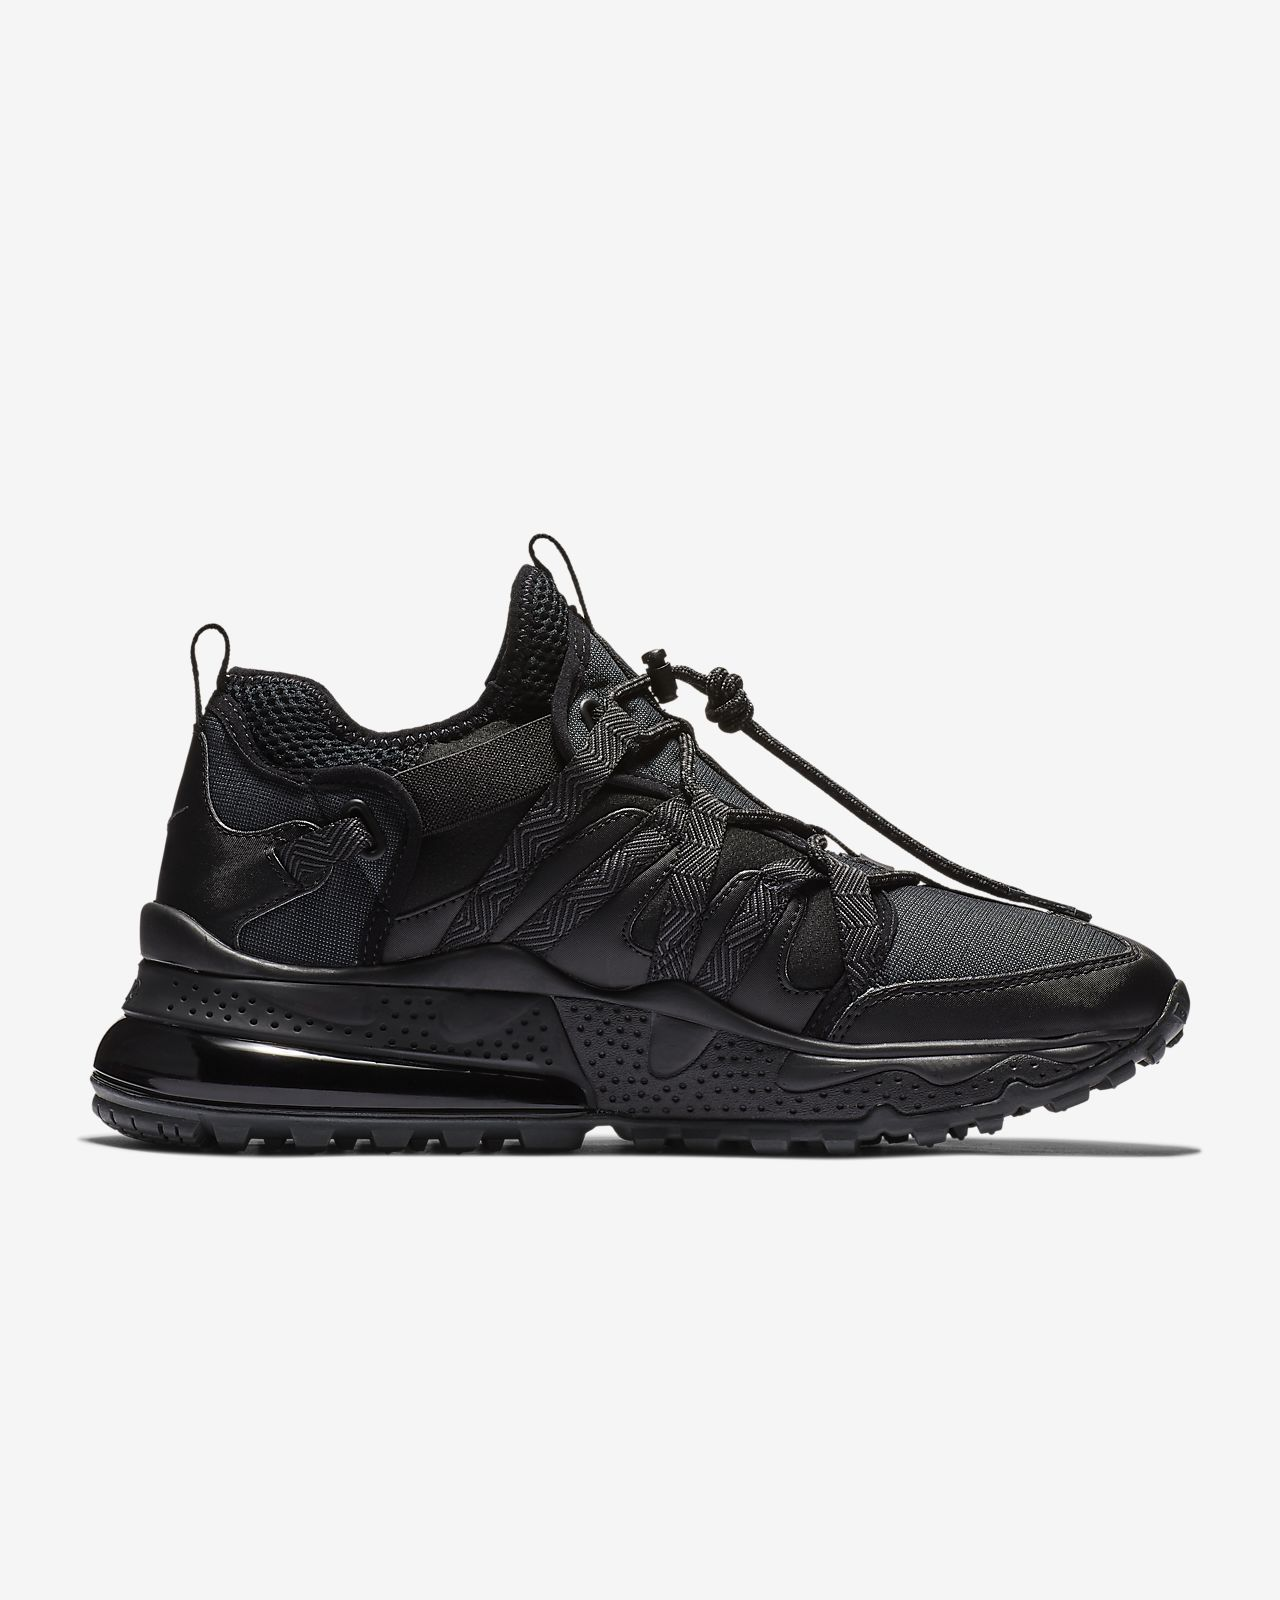 c0541ad8d Nike Air Max 270 Bowfin Men s Shoe. Nike.com